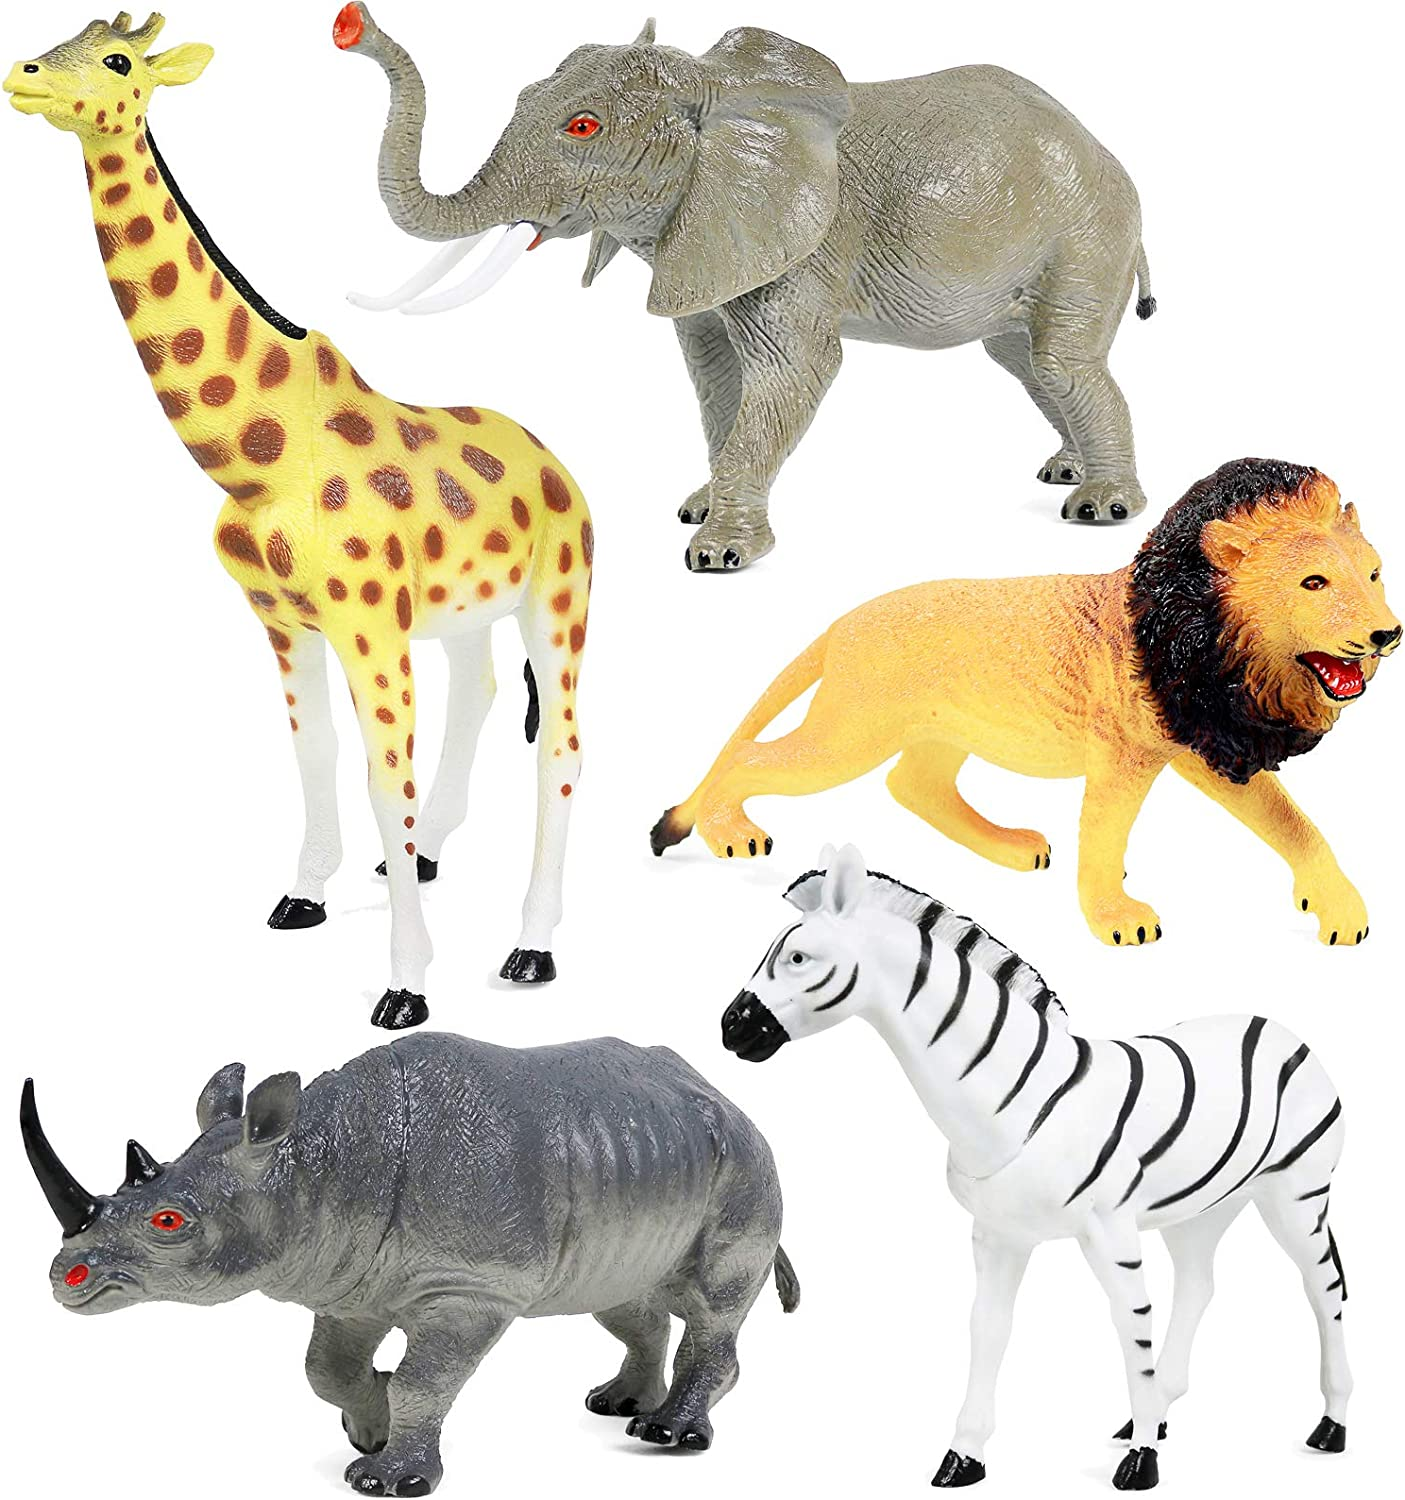 amazoncom animal figure8 inch jumbo jungle animal toy - HD 1411×1500